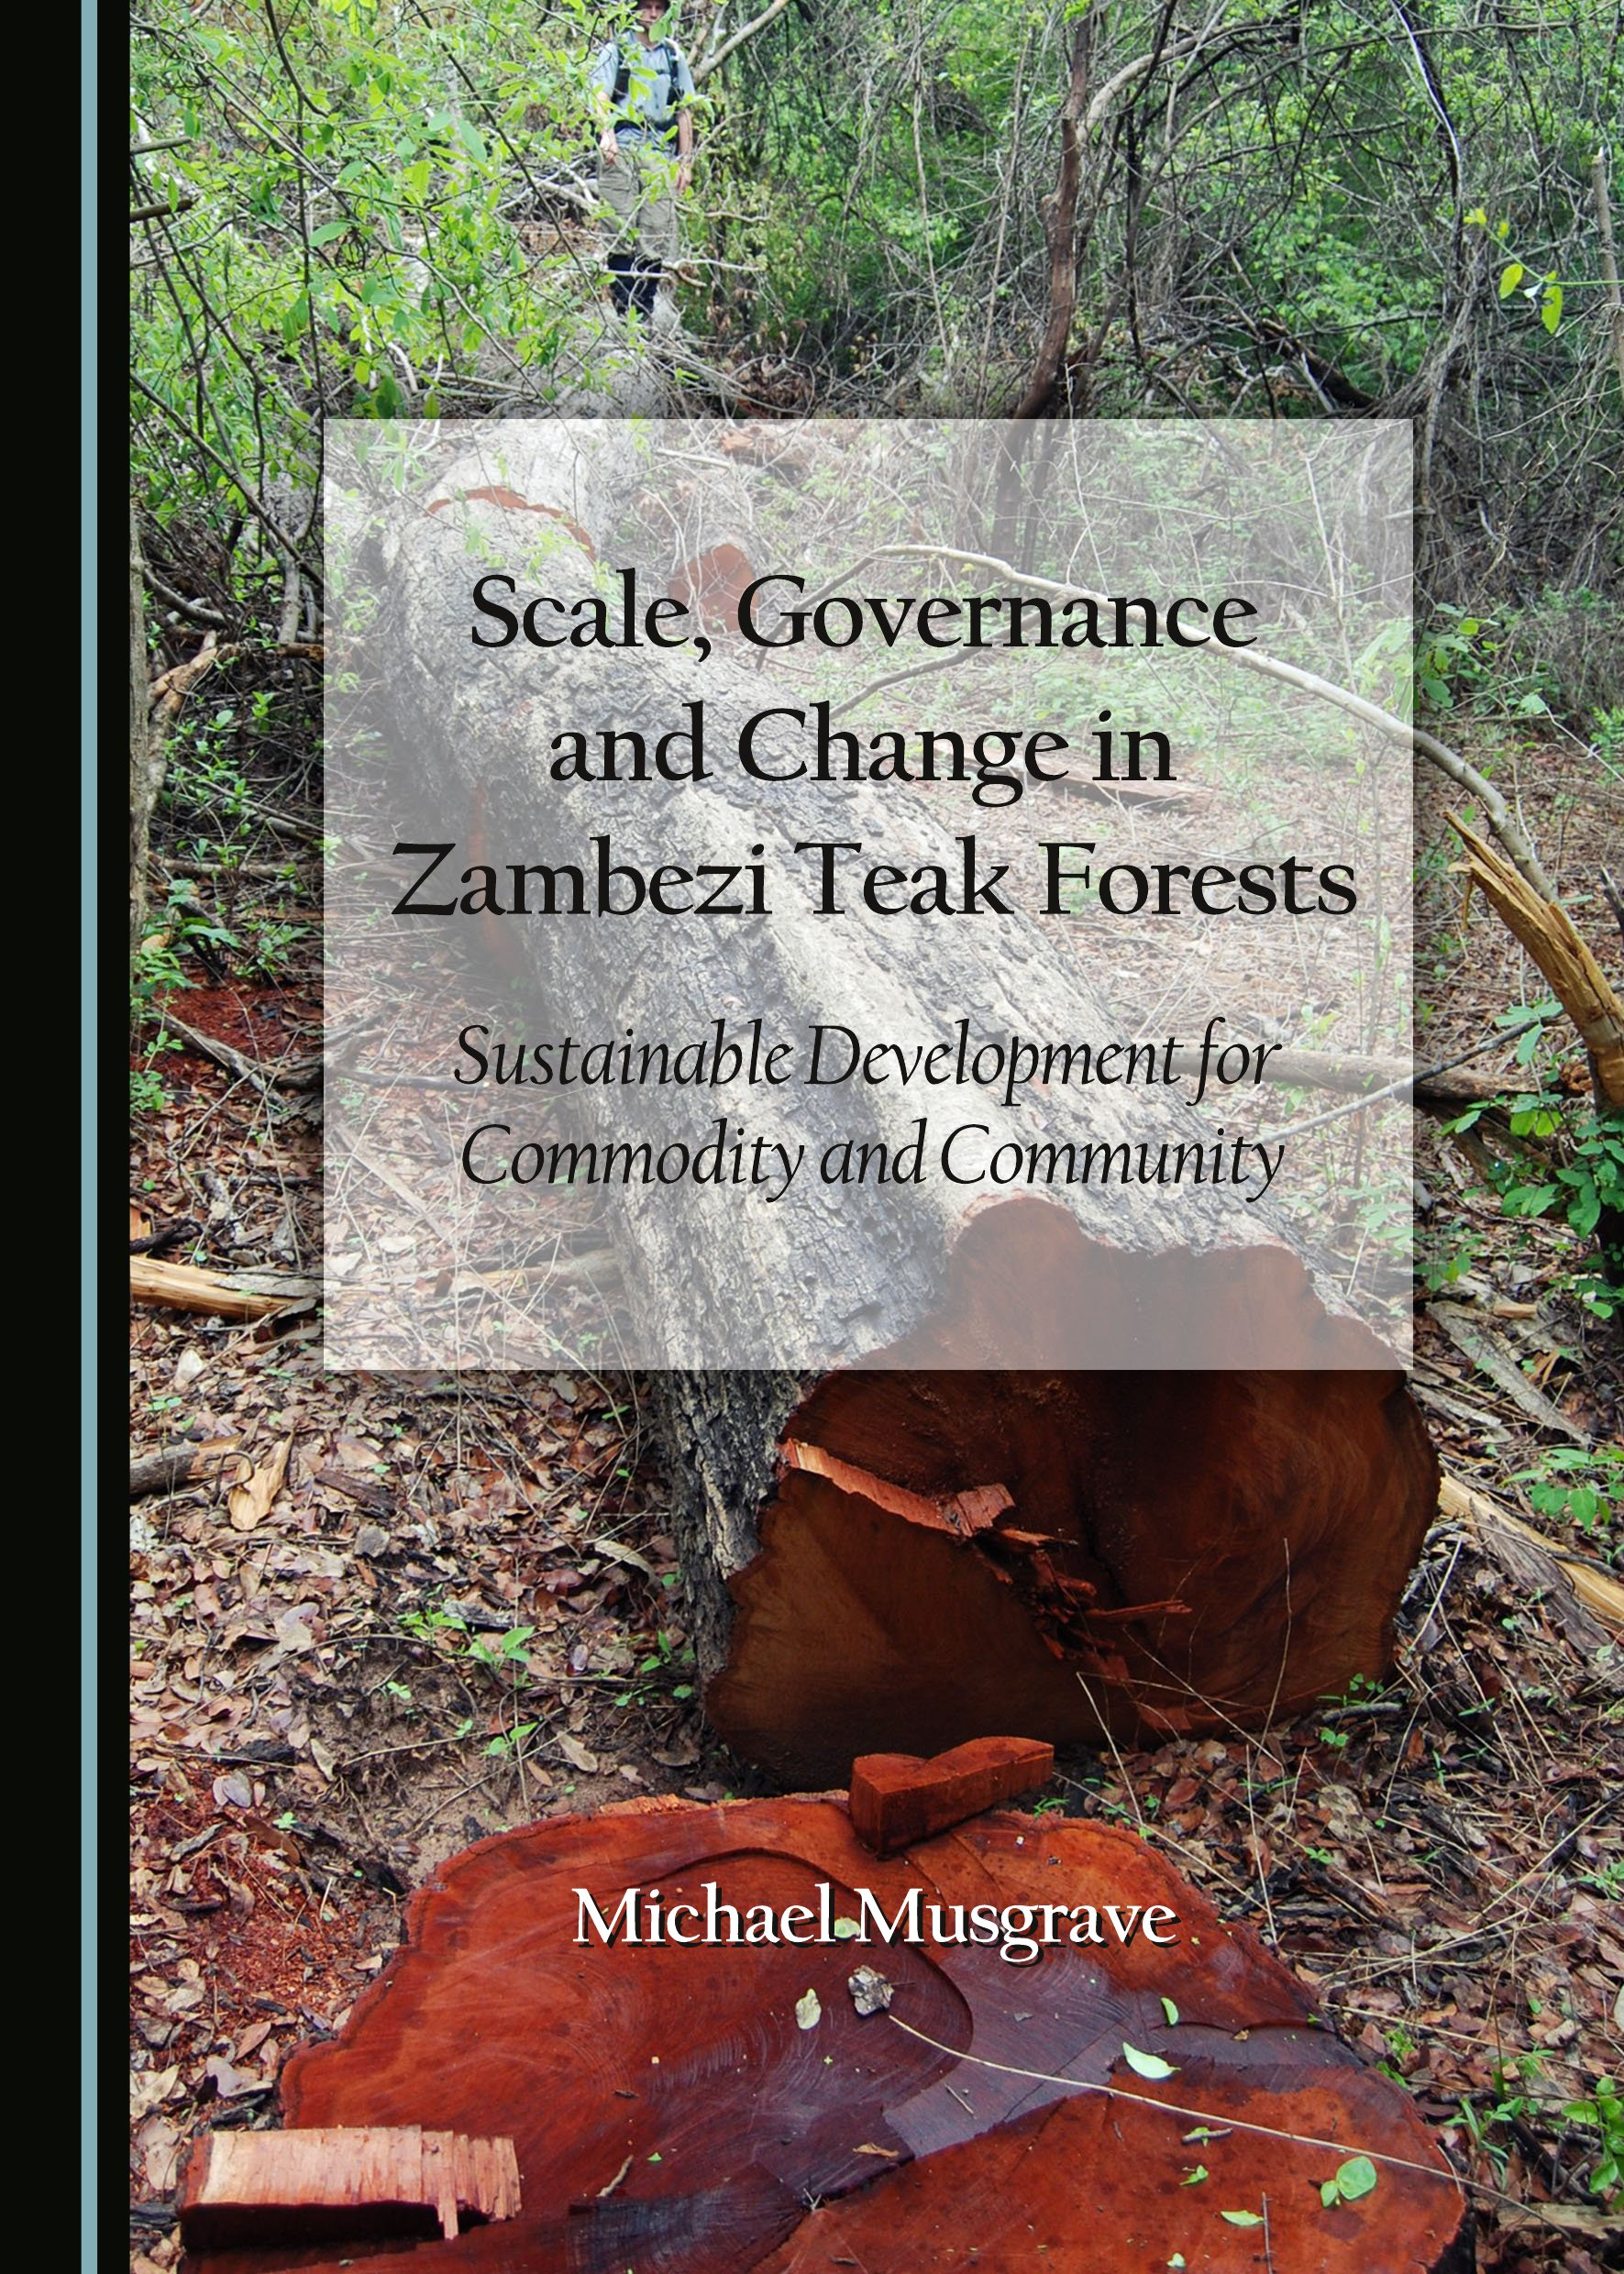 Scale, Governance and Change in Zambezi Teak Forests: Sustainable Development for Commodity and Community